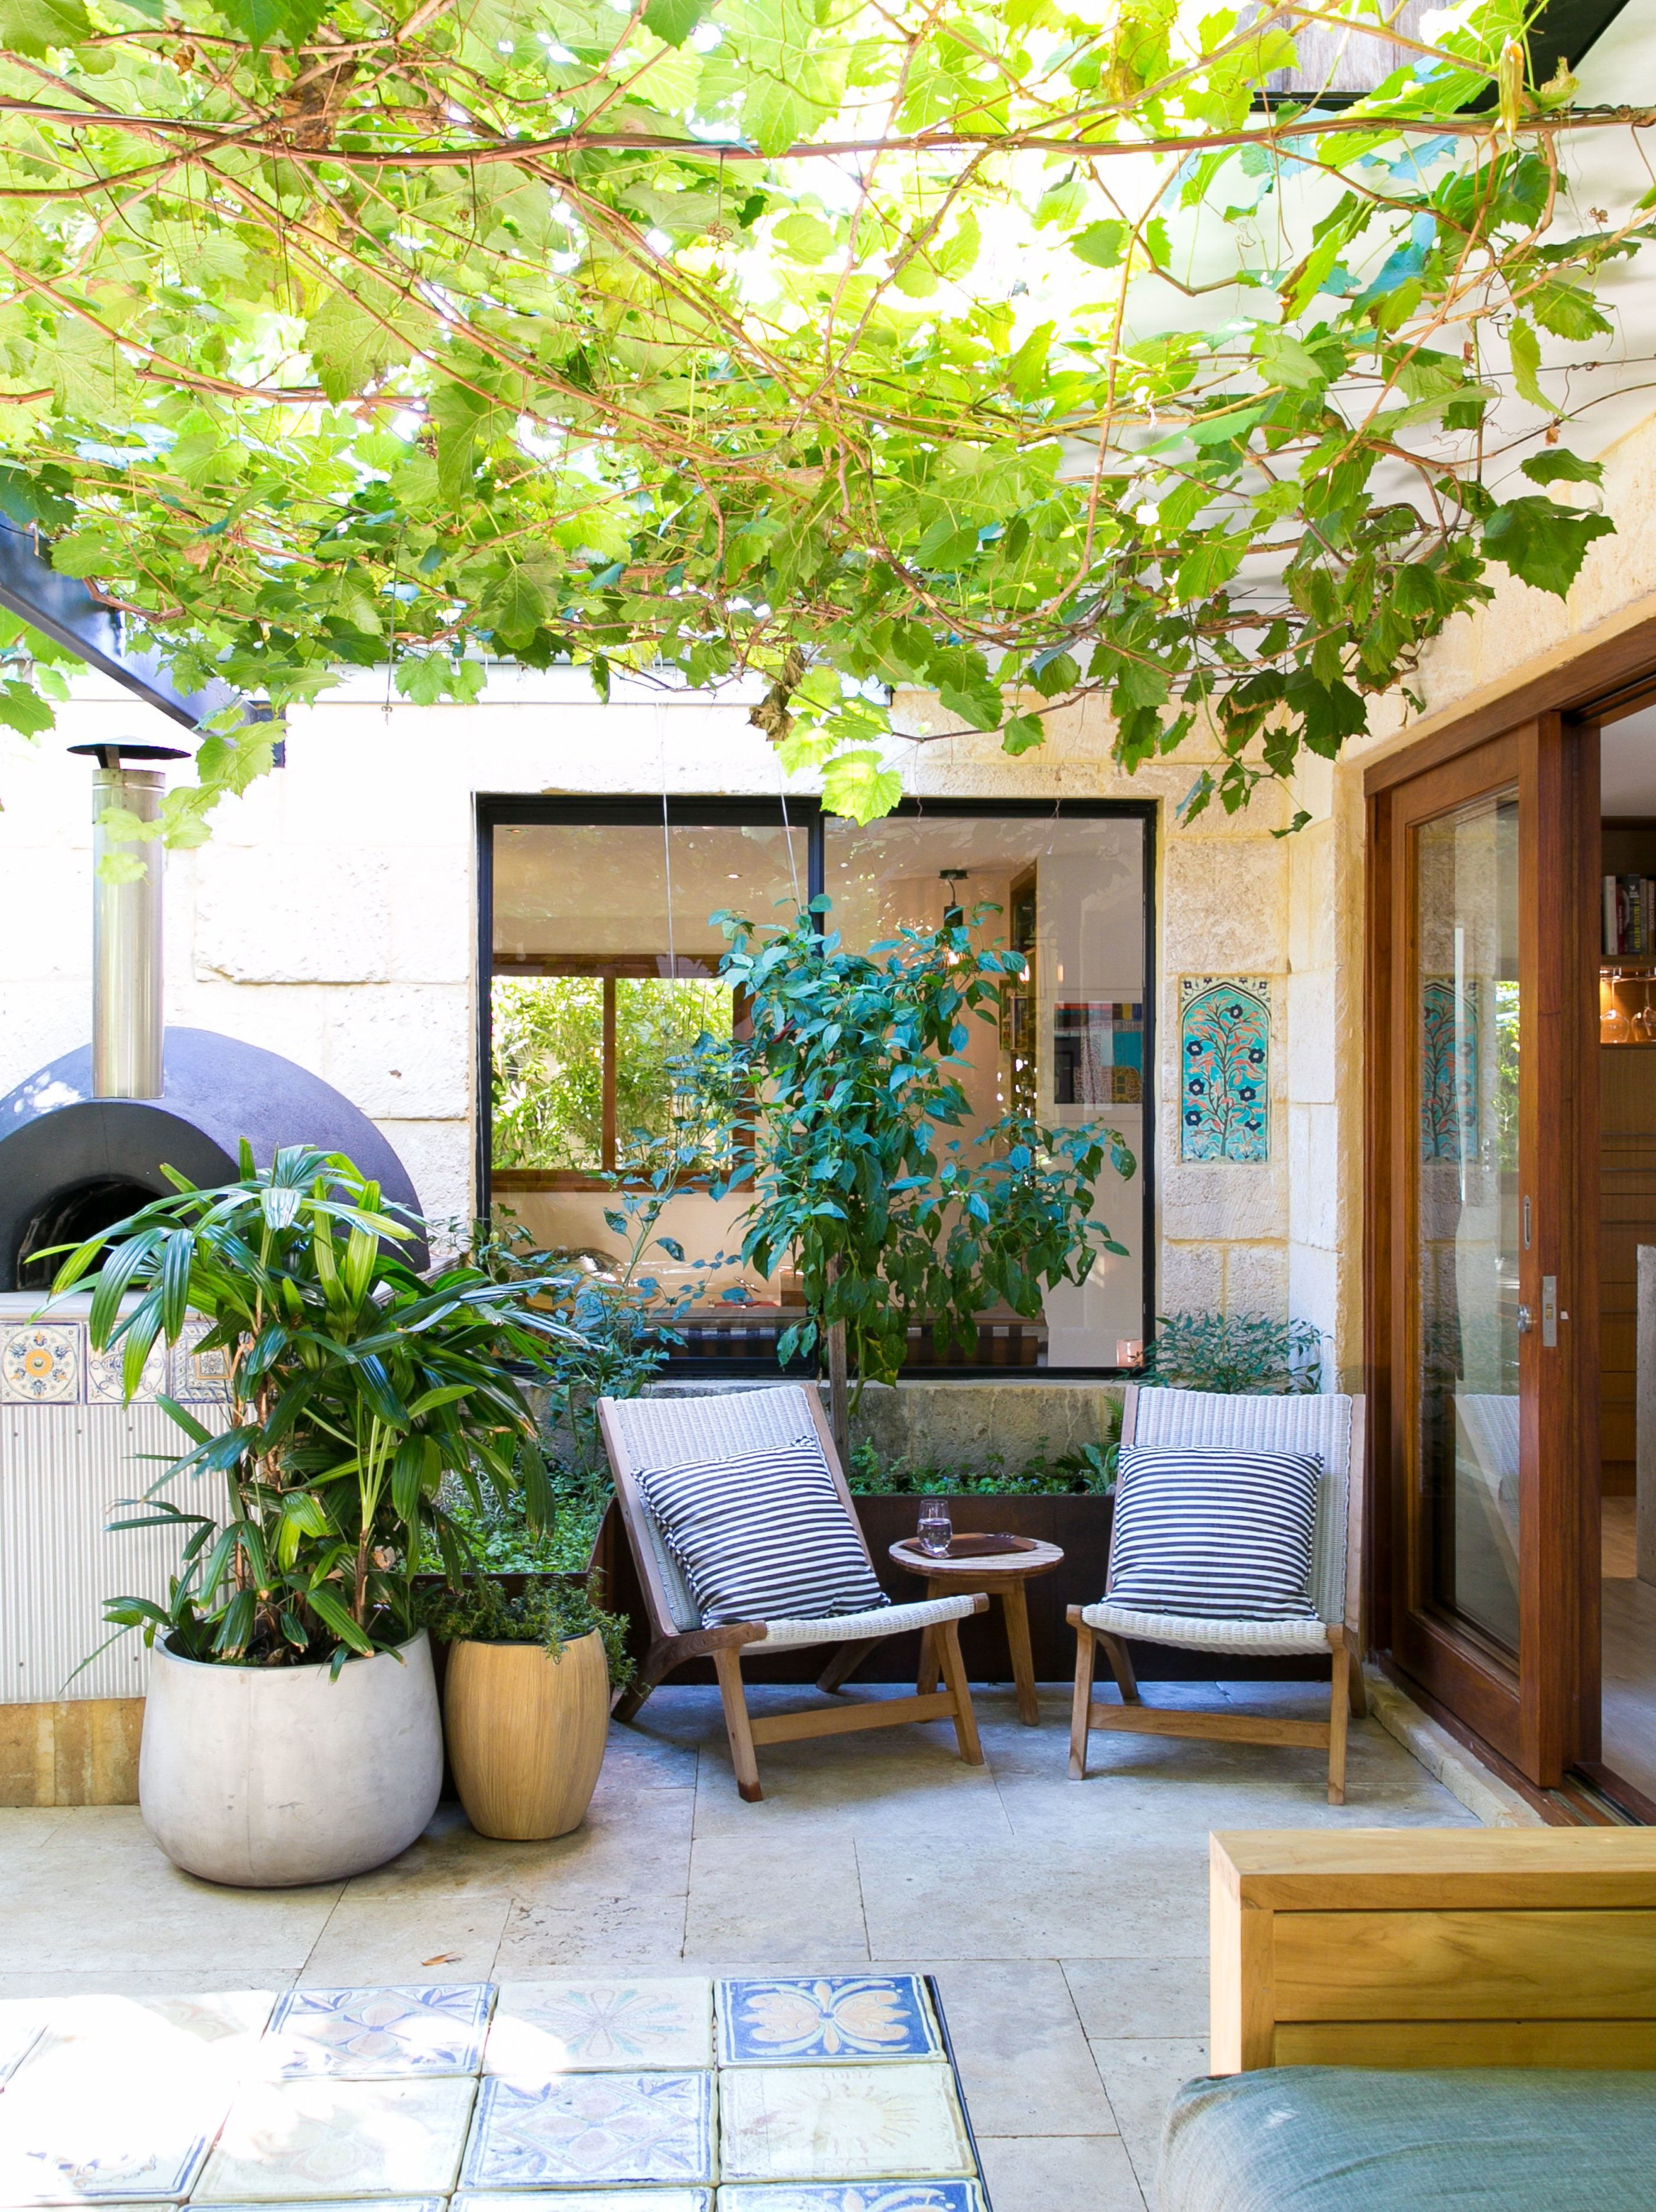 Landscaped Homes ascher and dylan's modern (& gorgeously landscaped!) australian